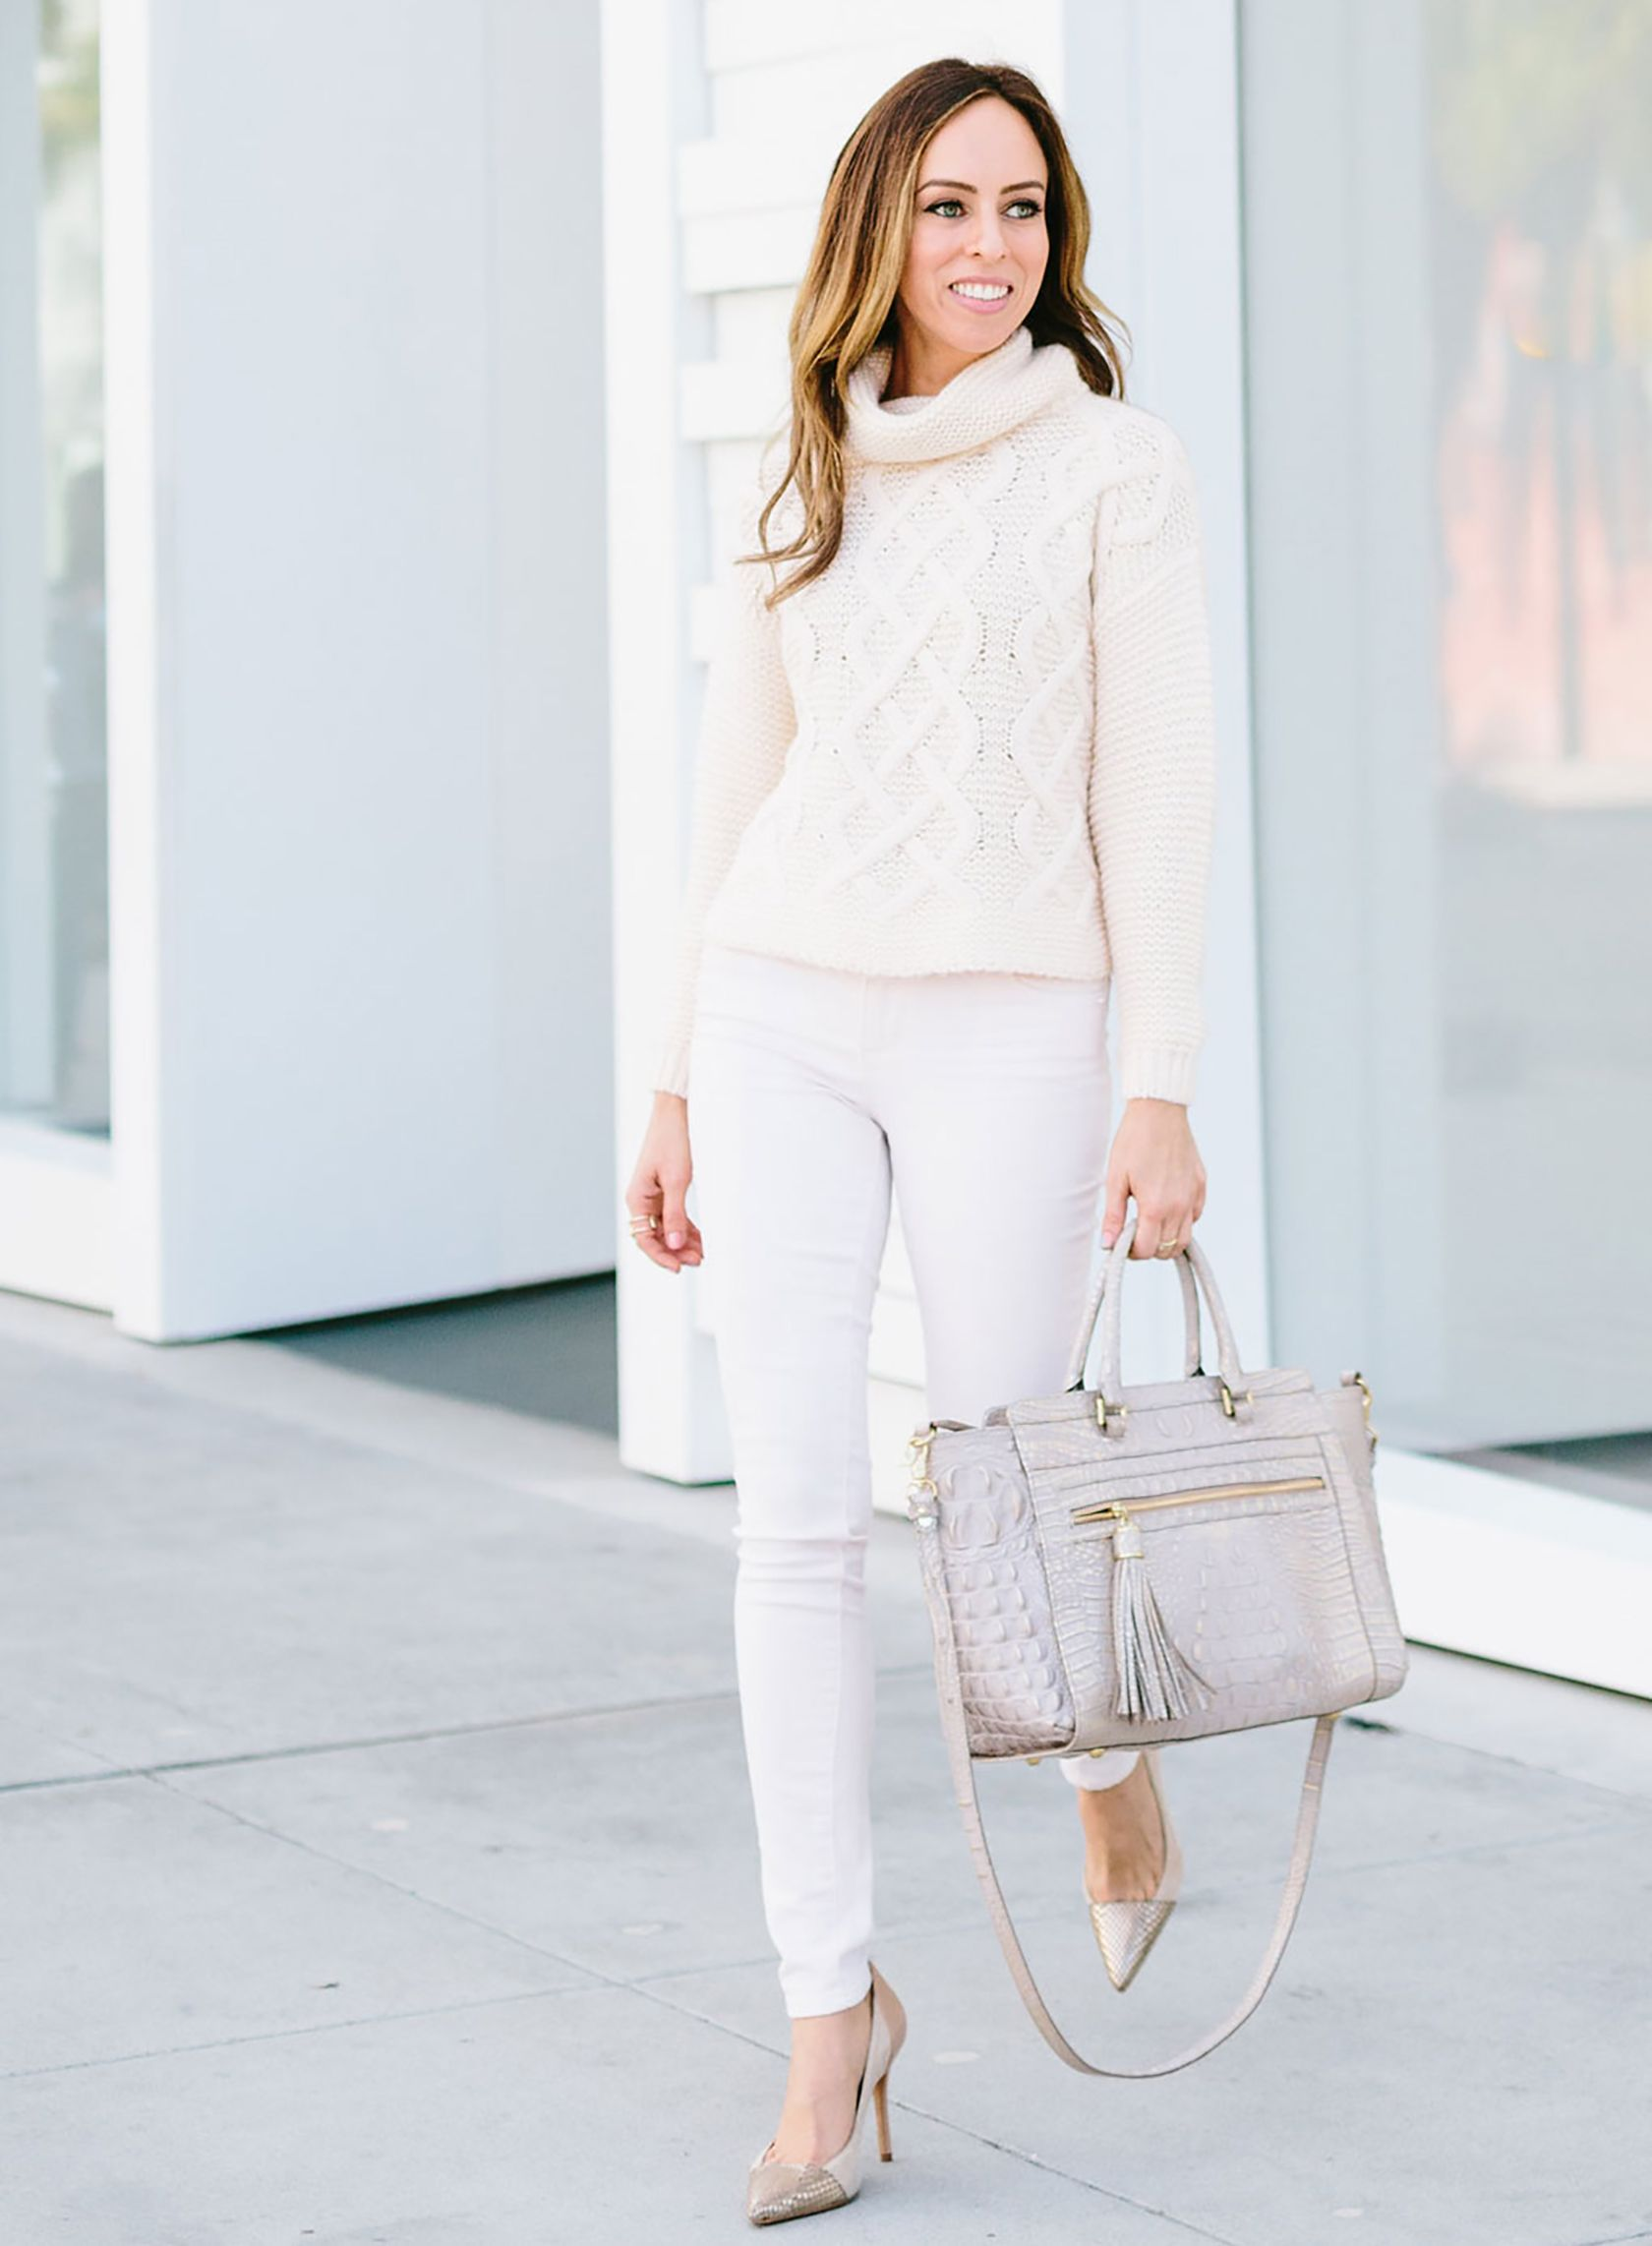 3367e47acaae7 Sydne Style shows pink outfit ideas for fall with monochromatic pastel pink  #pink #sweaters @sydnesummer